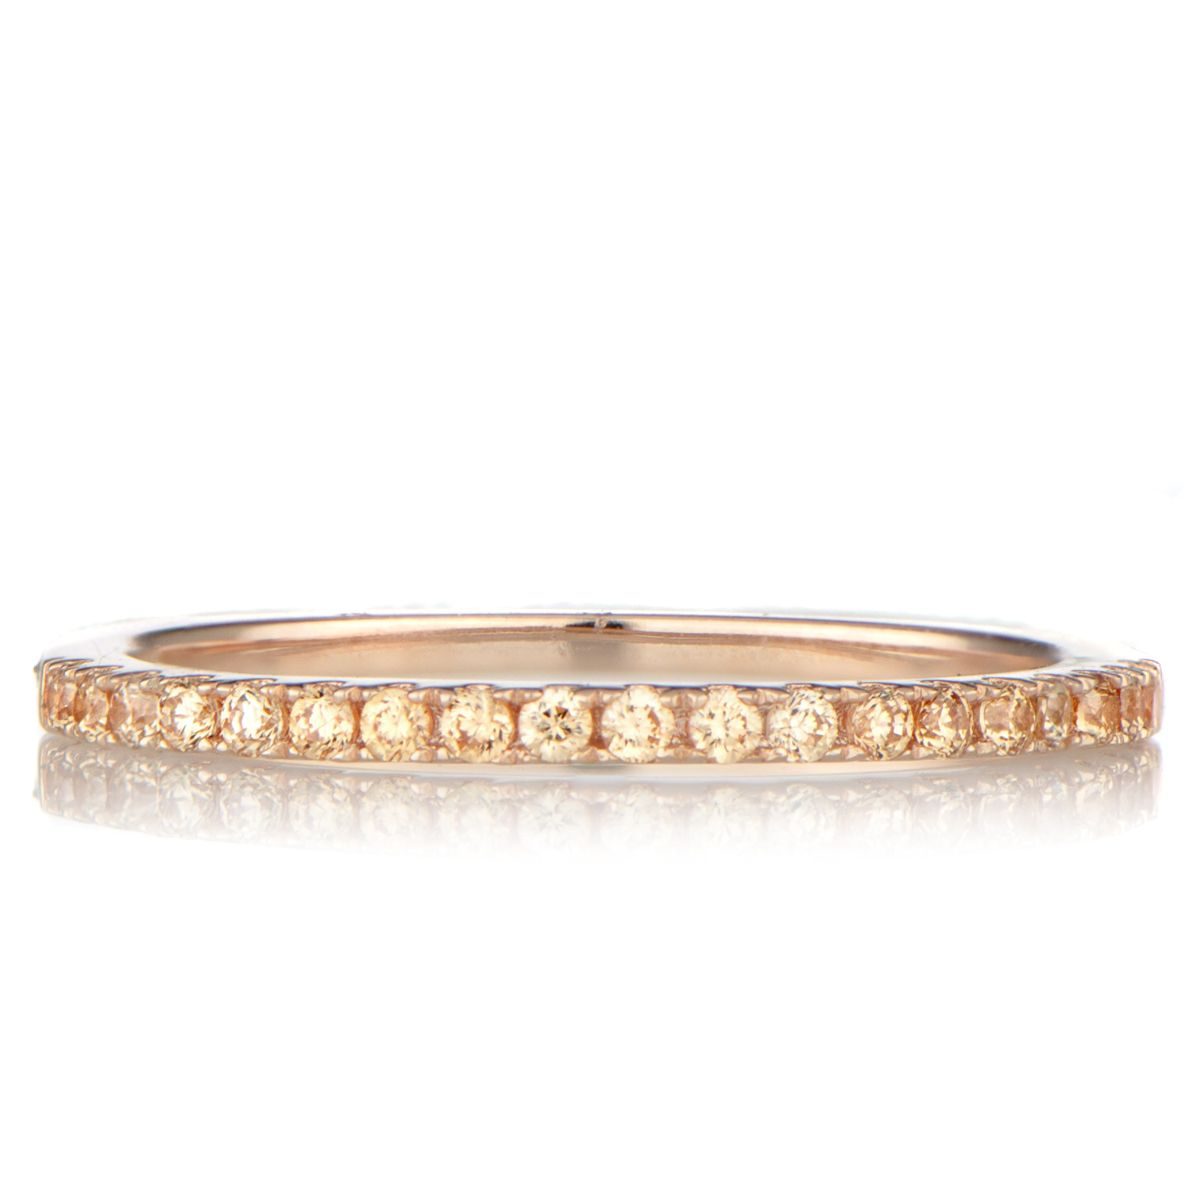 Ana S Rose Goldtone And Champagne Cz Wedding Band